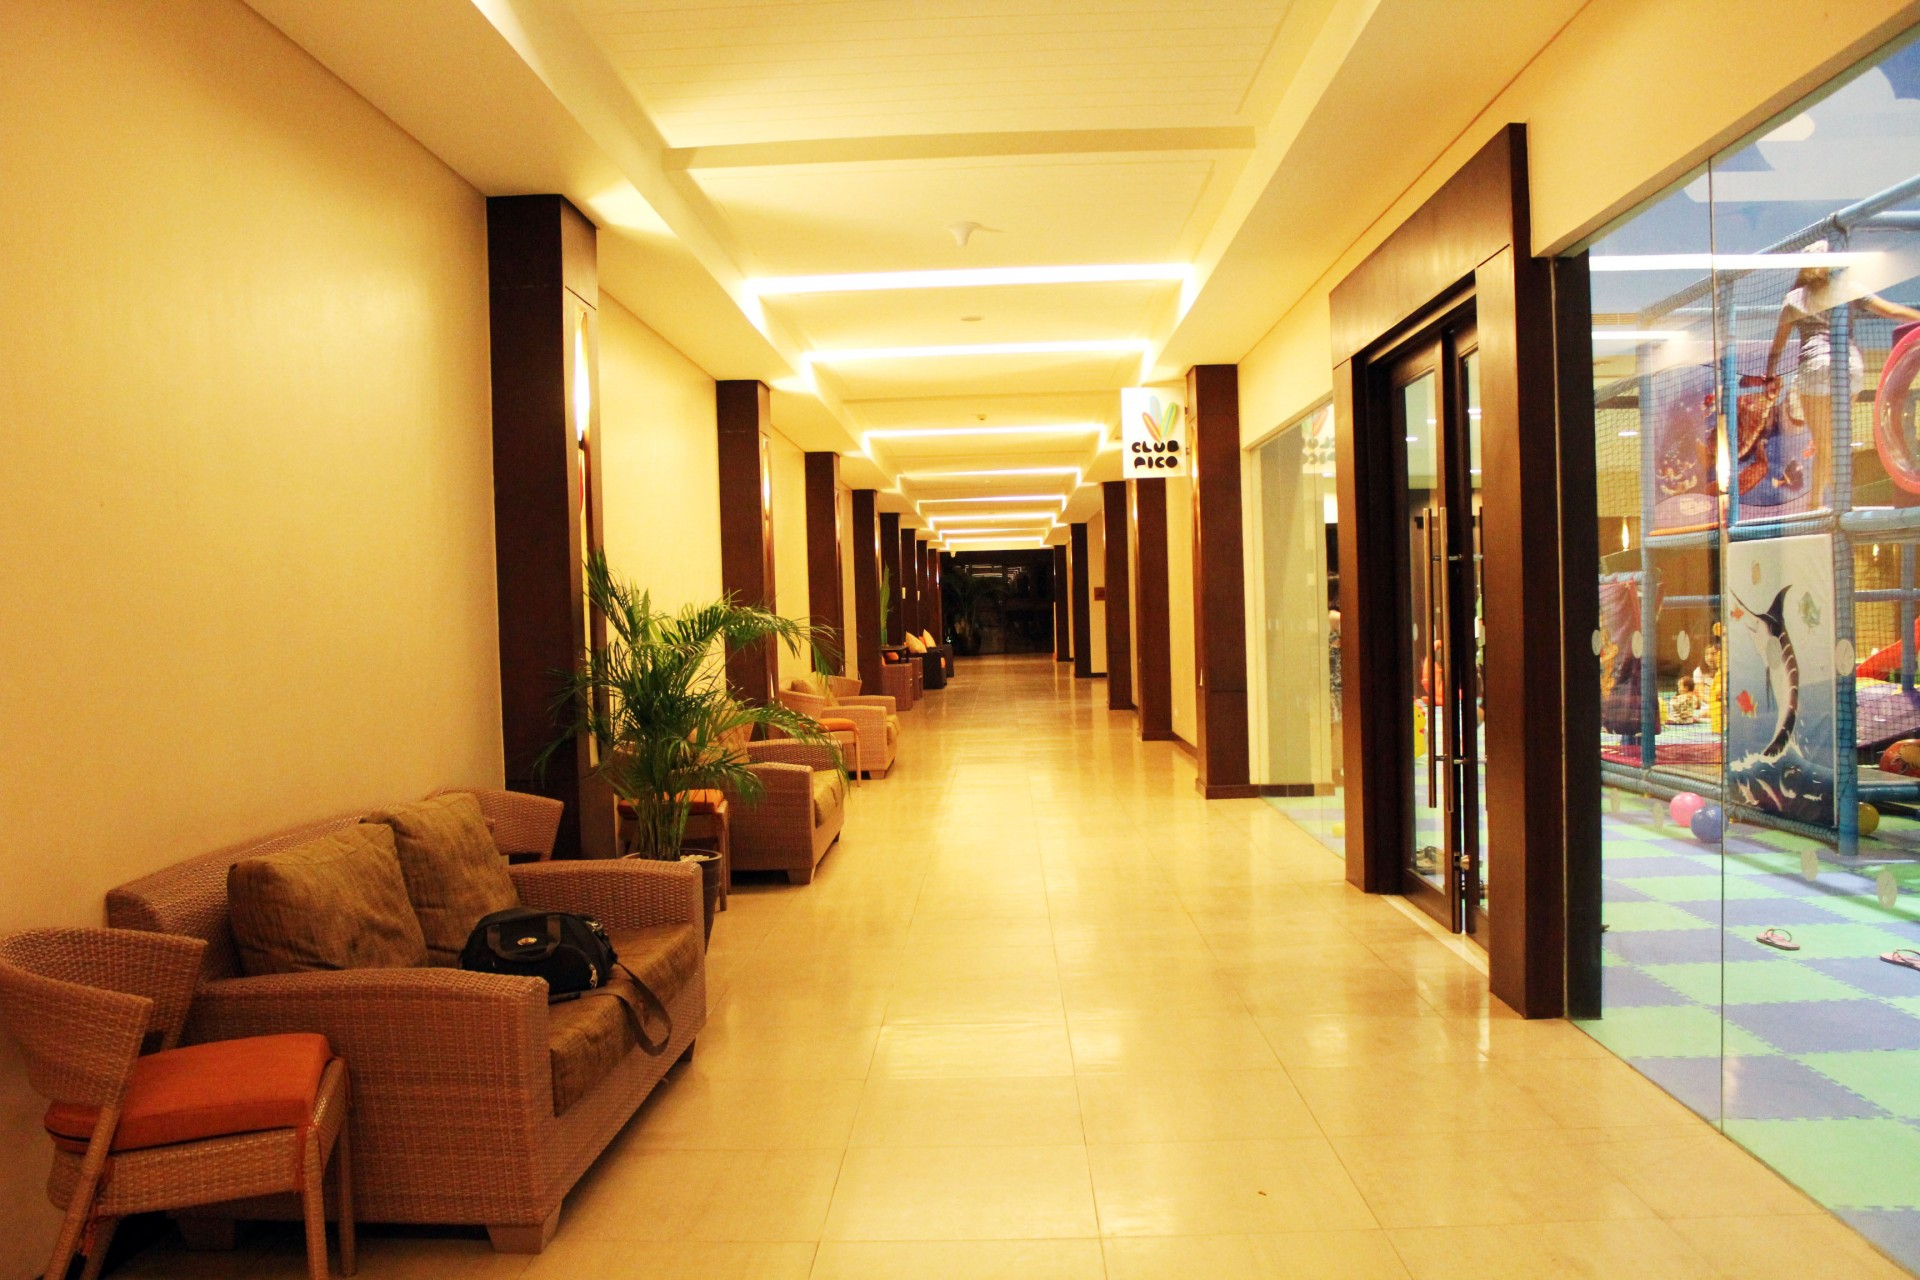 Hotel Hallway Free Stock Photo Public Domain Pictures